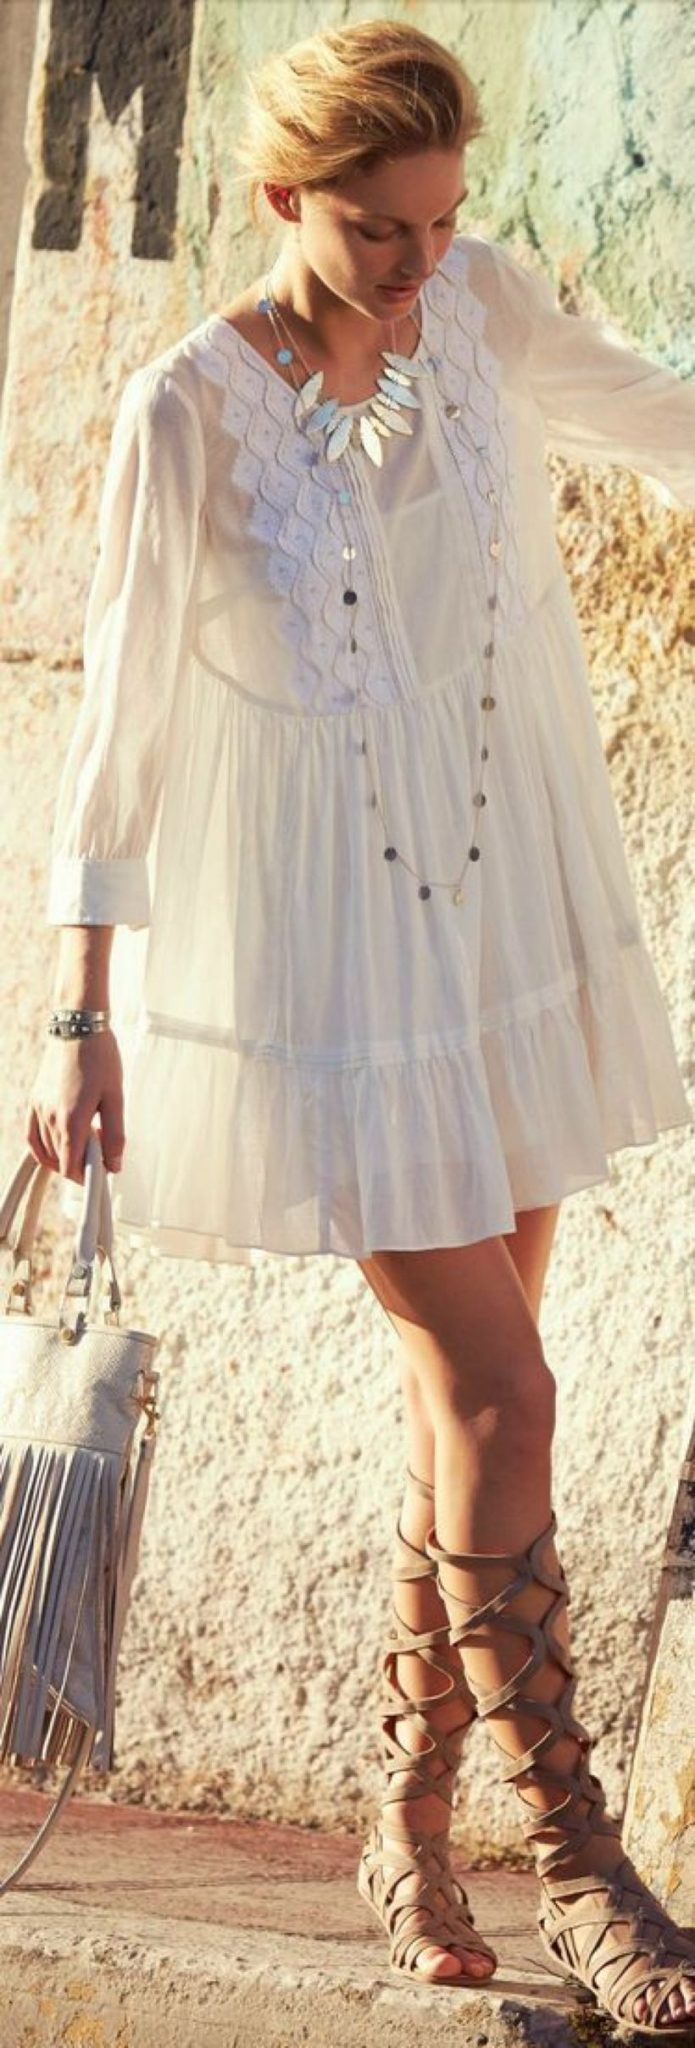 Vintage chic fashion outfits ideas 2